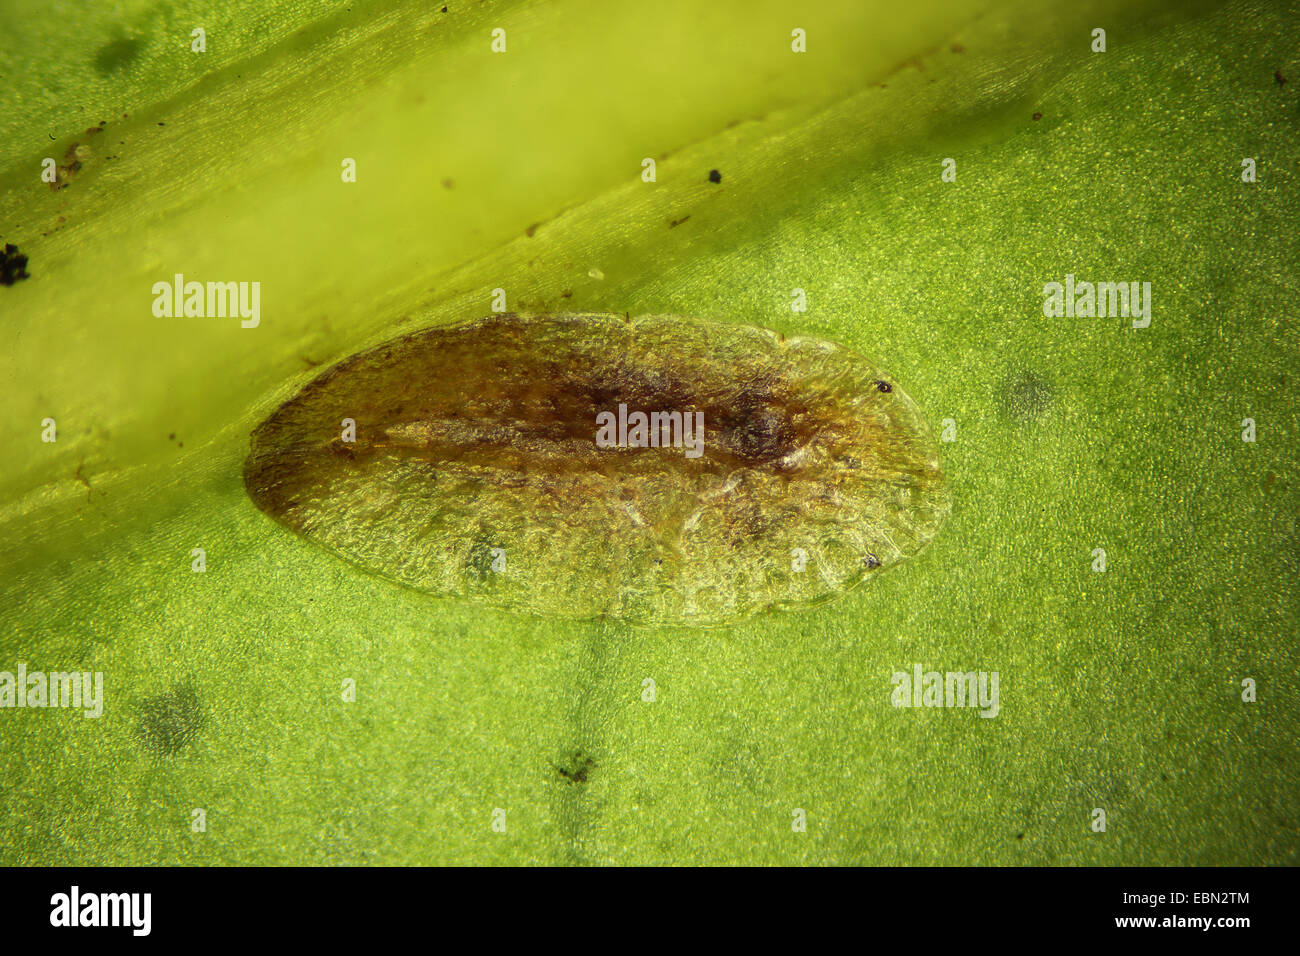 scale insect (Coccoidea), scale insect at a plant - Stock Image